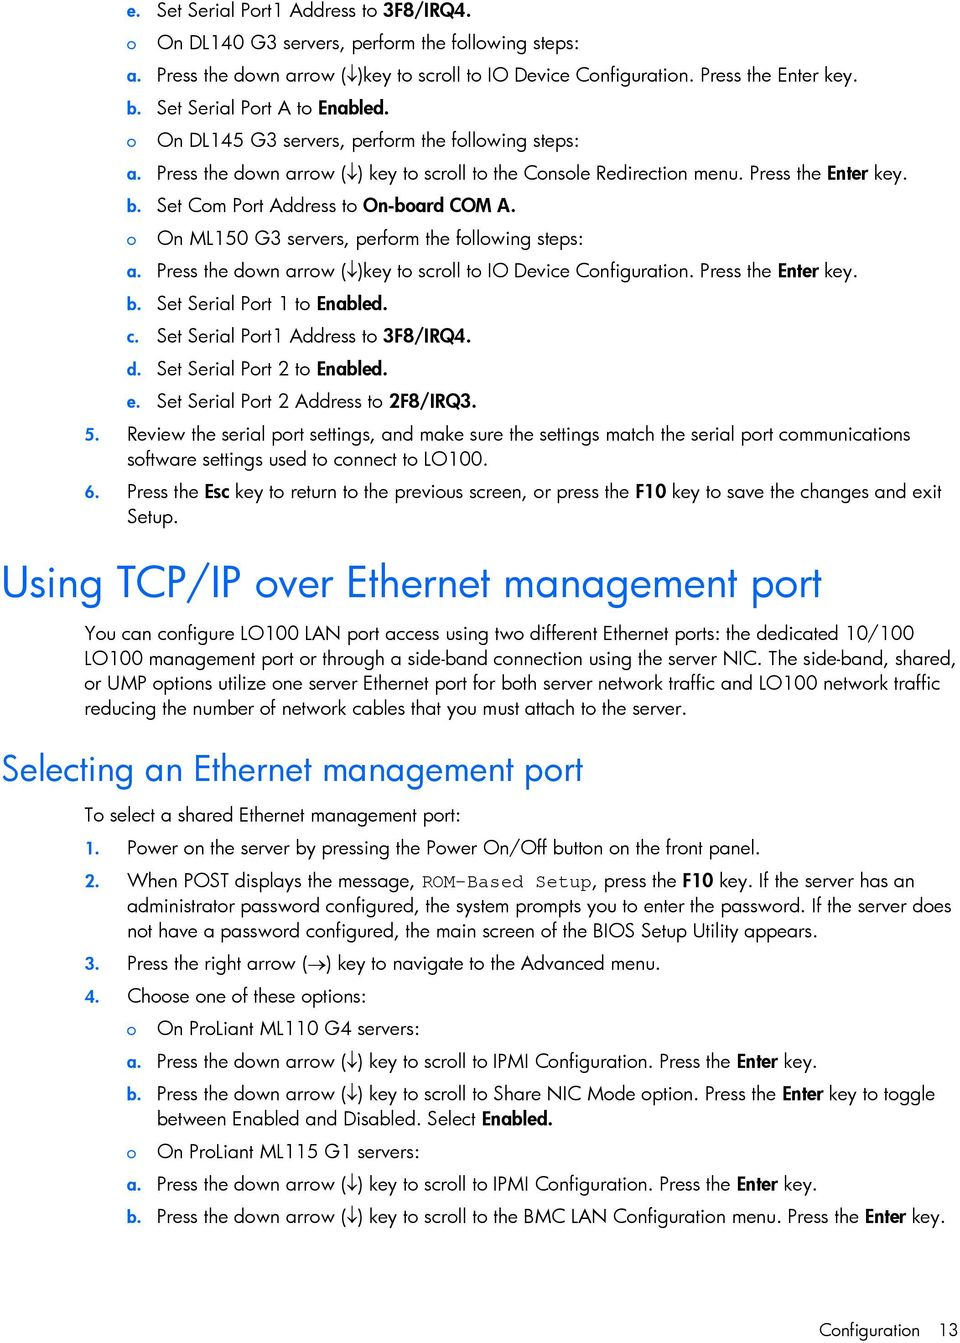 HP ProLiant Lights-Out 100 Remote Management User Guide - PDF